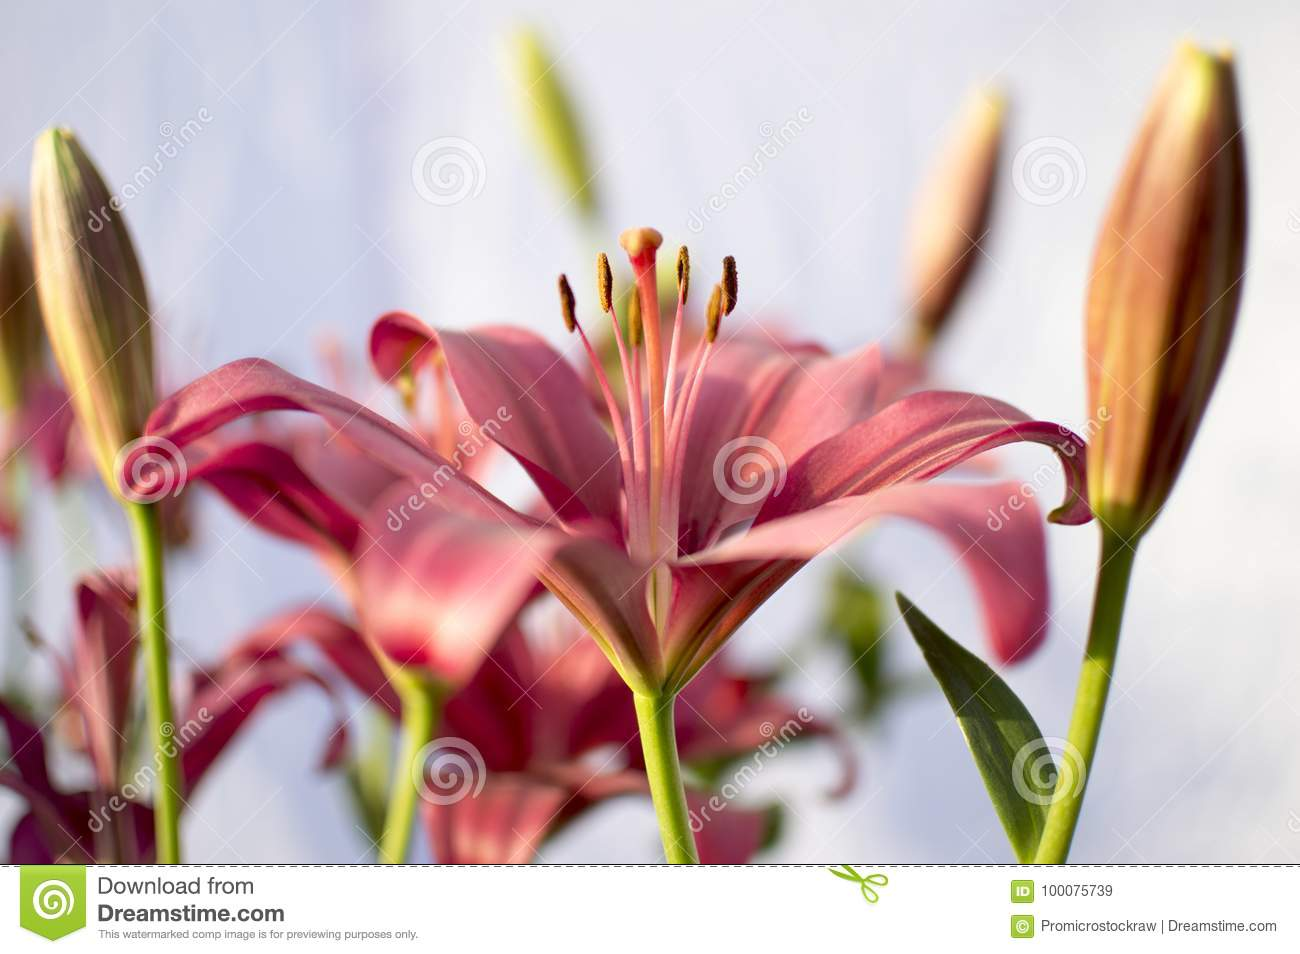 Pollens of lily flower of red and pink color stock image image of pollens of lily flower of red and pink color izmirmasajfo